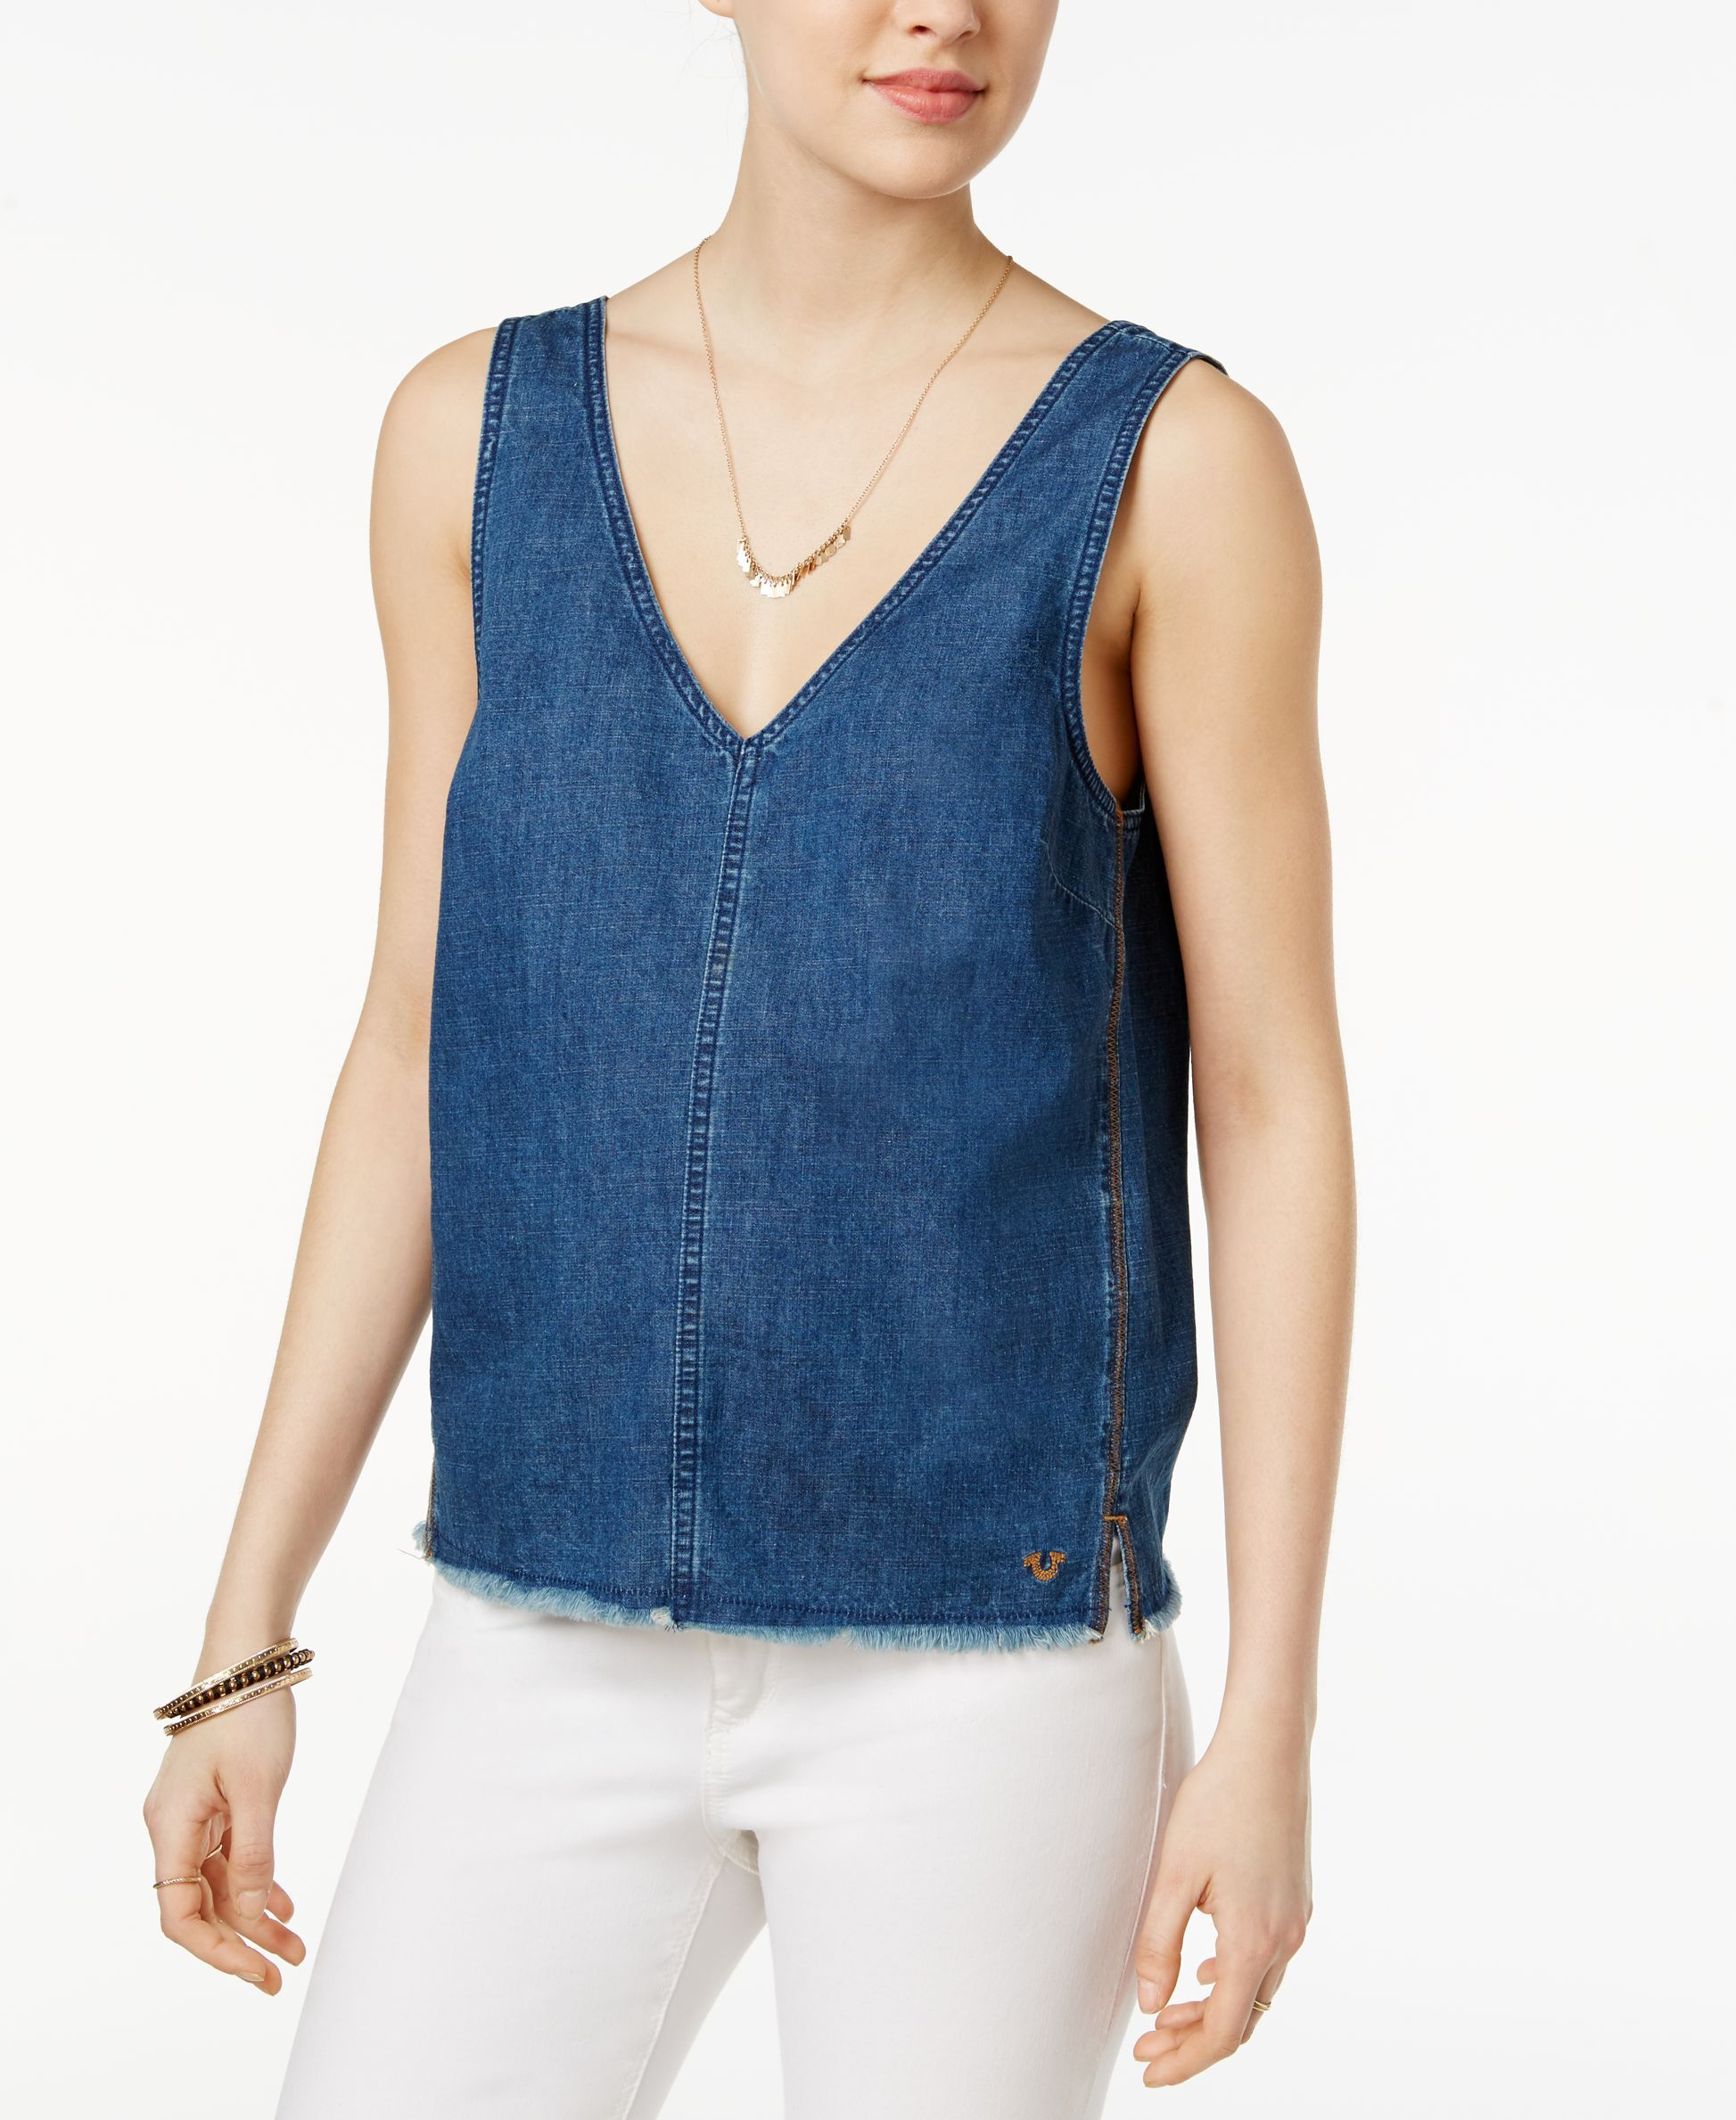 44d7ad1a1c82c True Religion Cotton Denim Tank Top